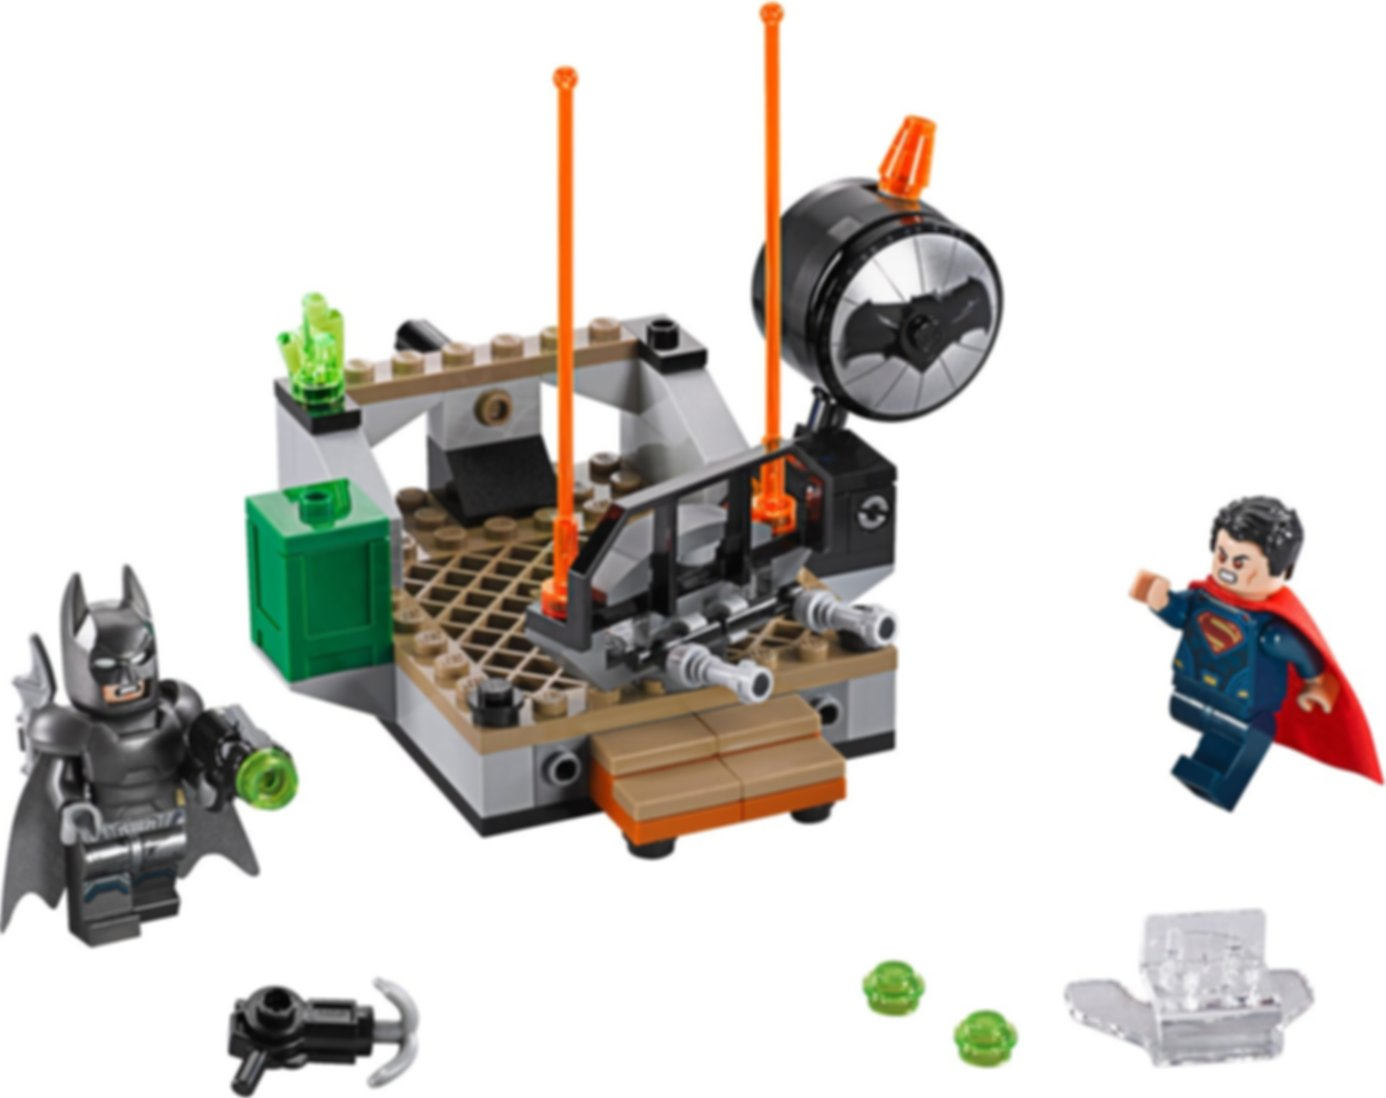 LEGO® DC Superheroes Clash of the Heroes components